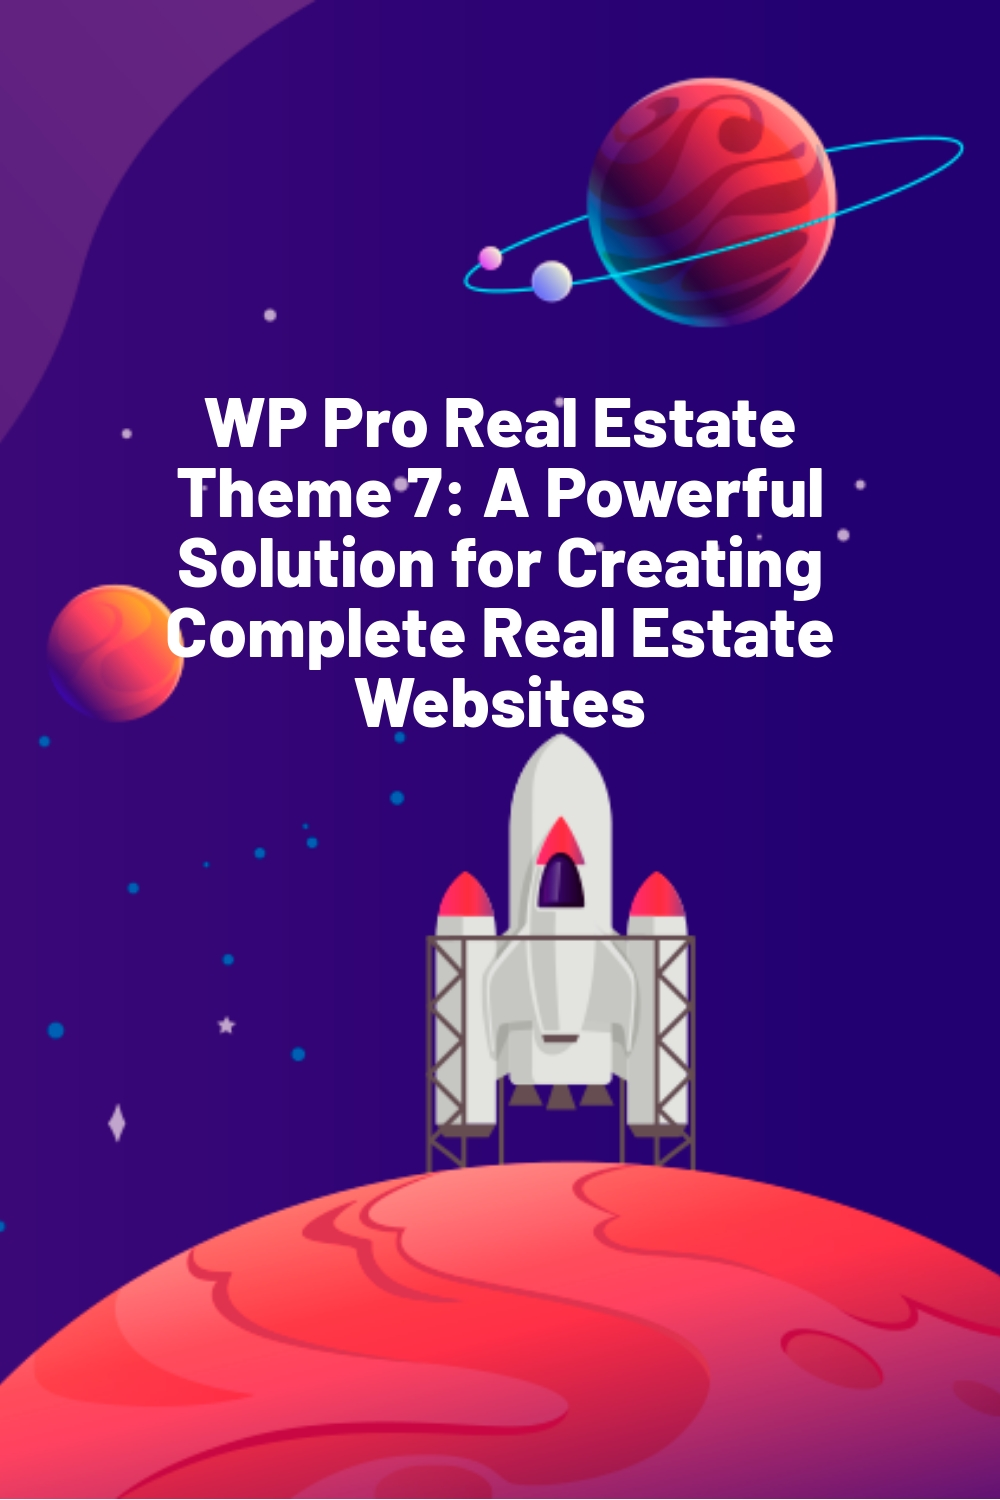 WP Pro Real Estate Theme 7: A Powerful Solution for Creating Complete Real Estate Websites